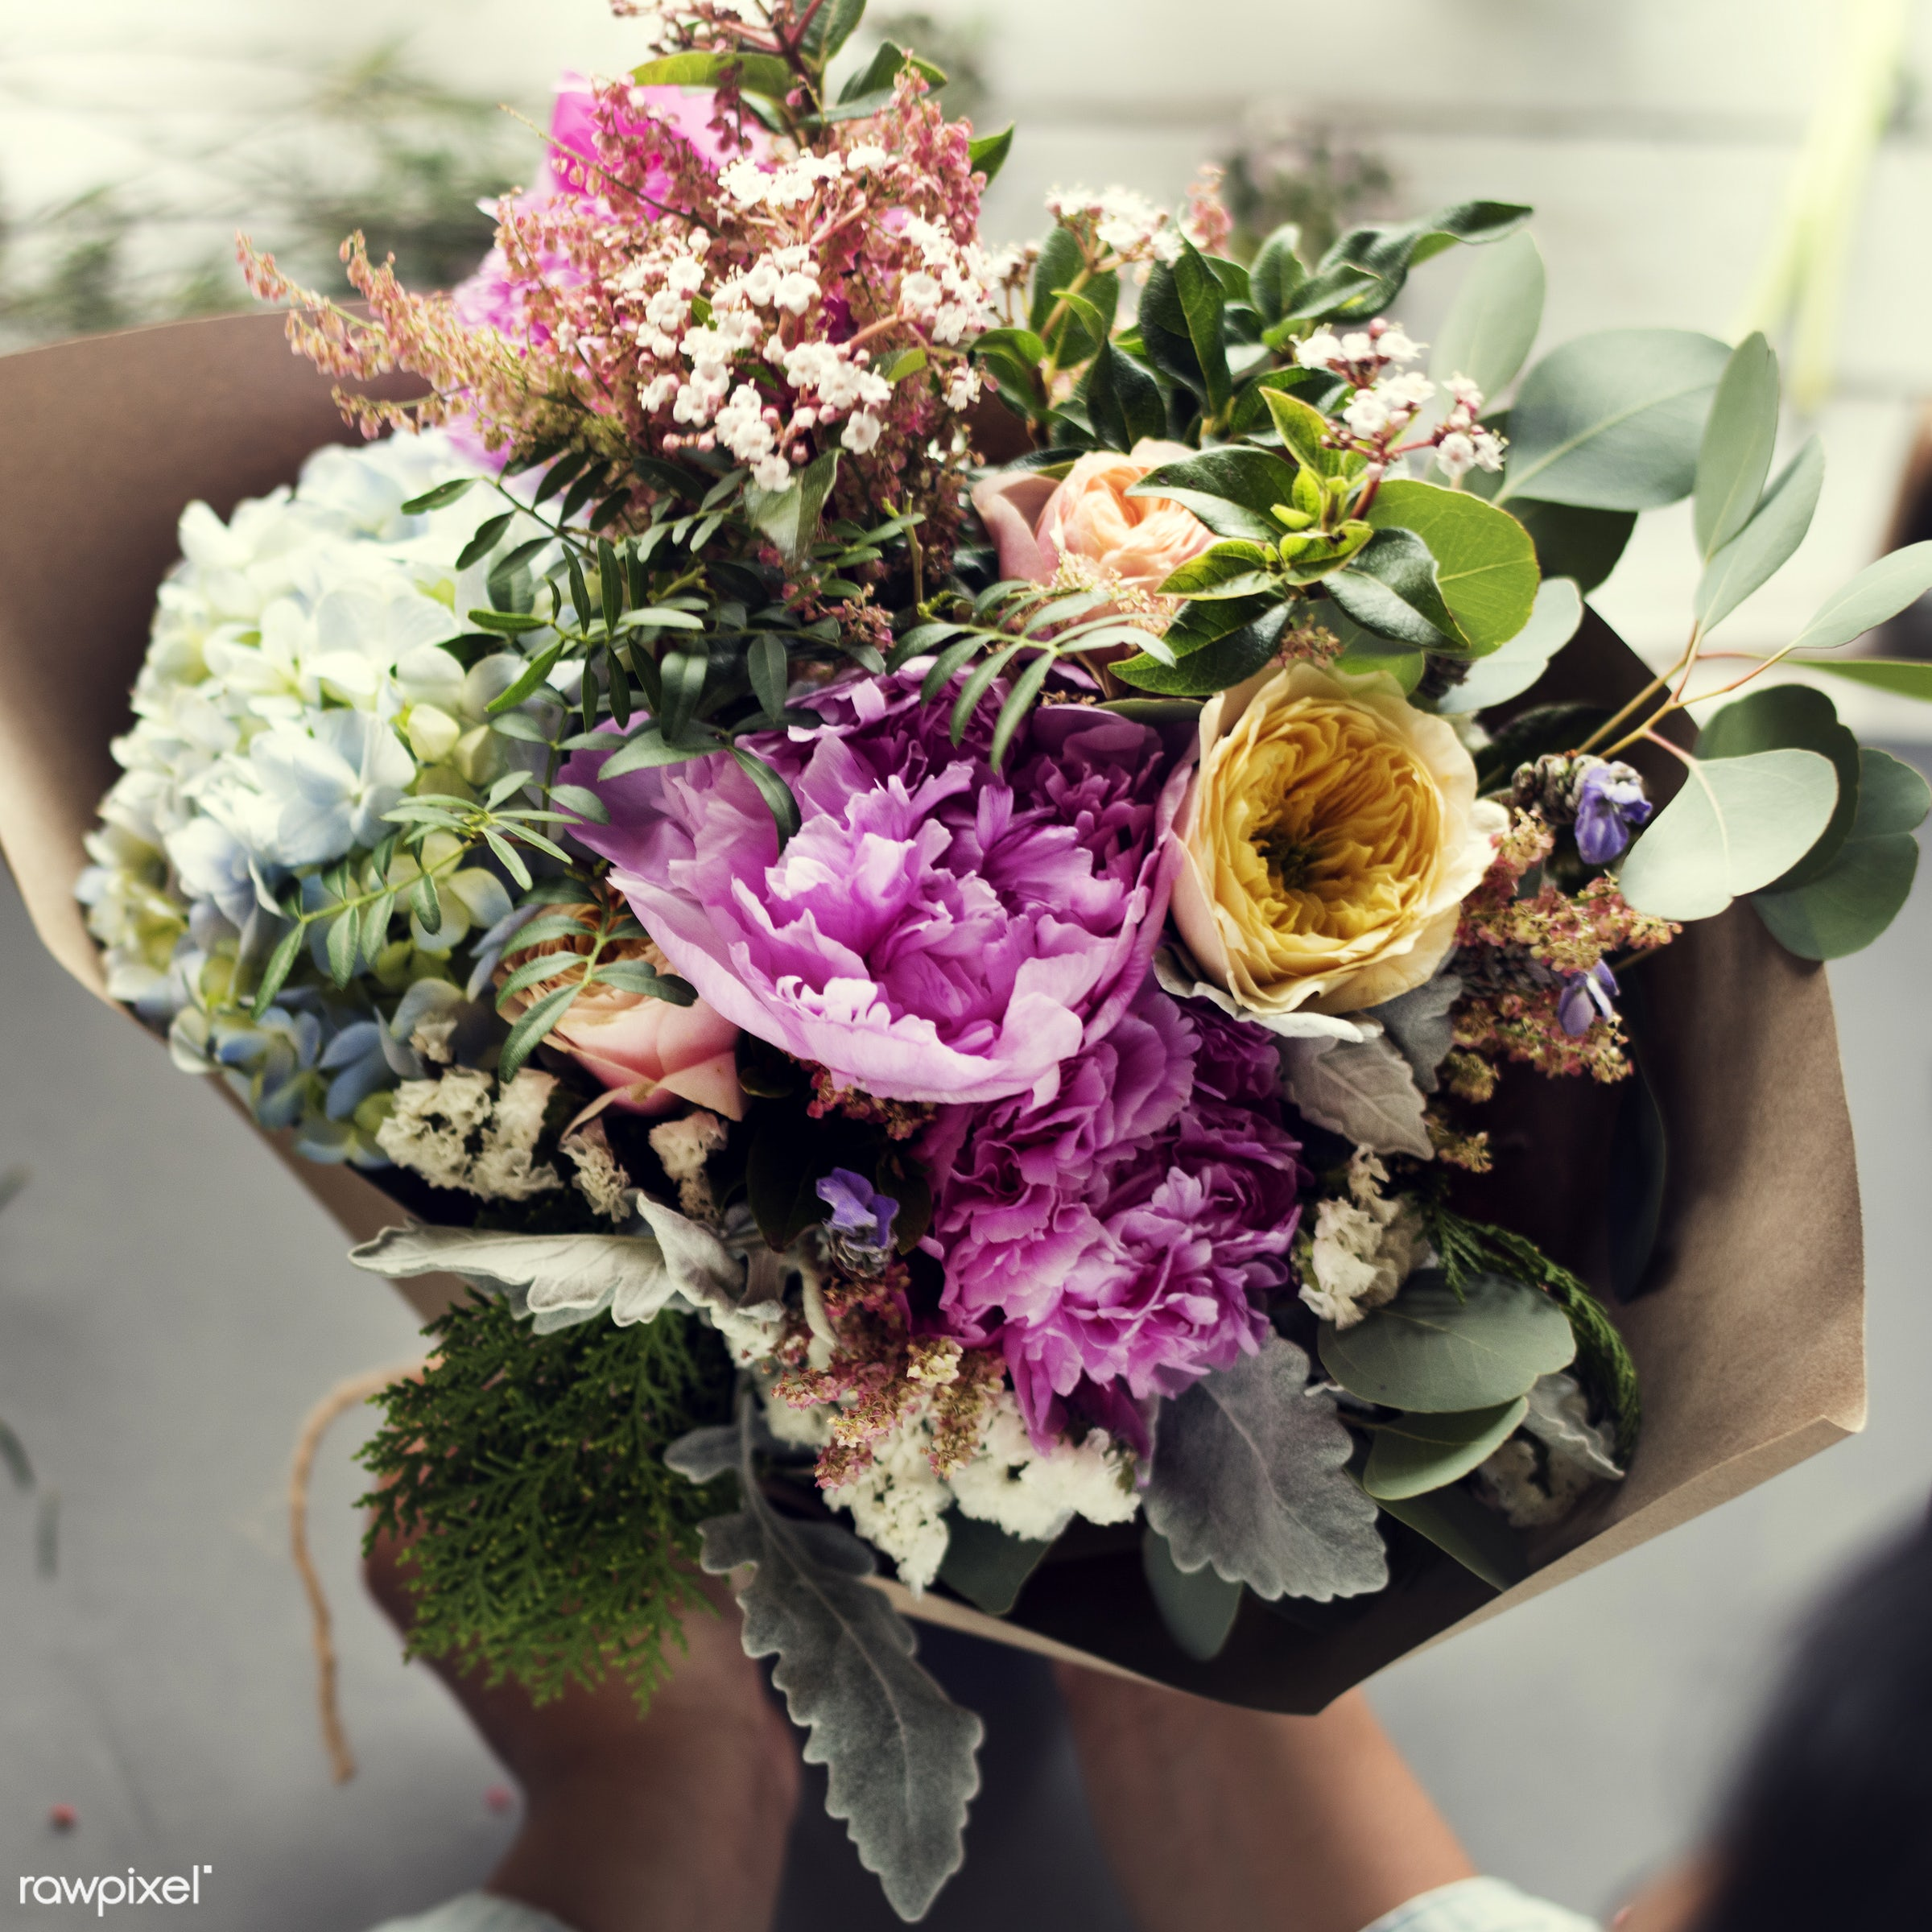 plant, bouquet, person, wrapped, holding, paper, people, blossom, fresh, hands, aerial view, flower, decoration, flora,...